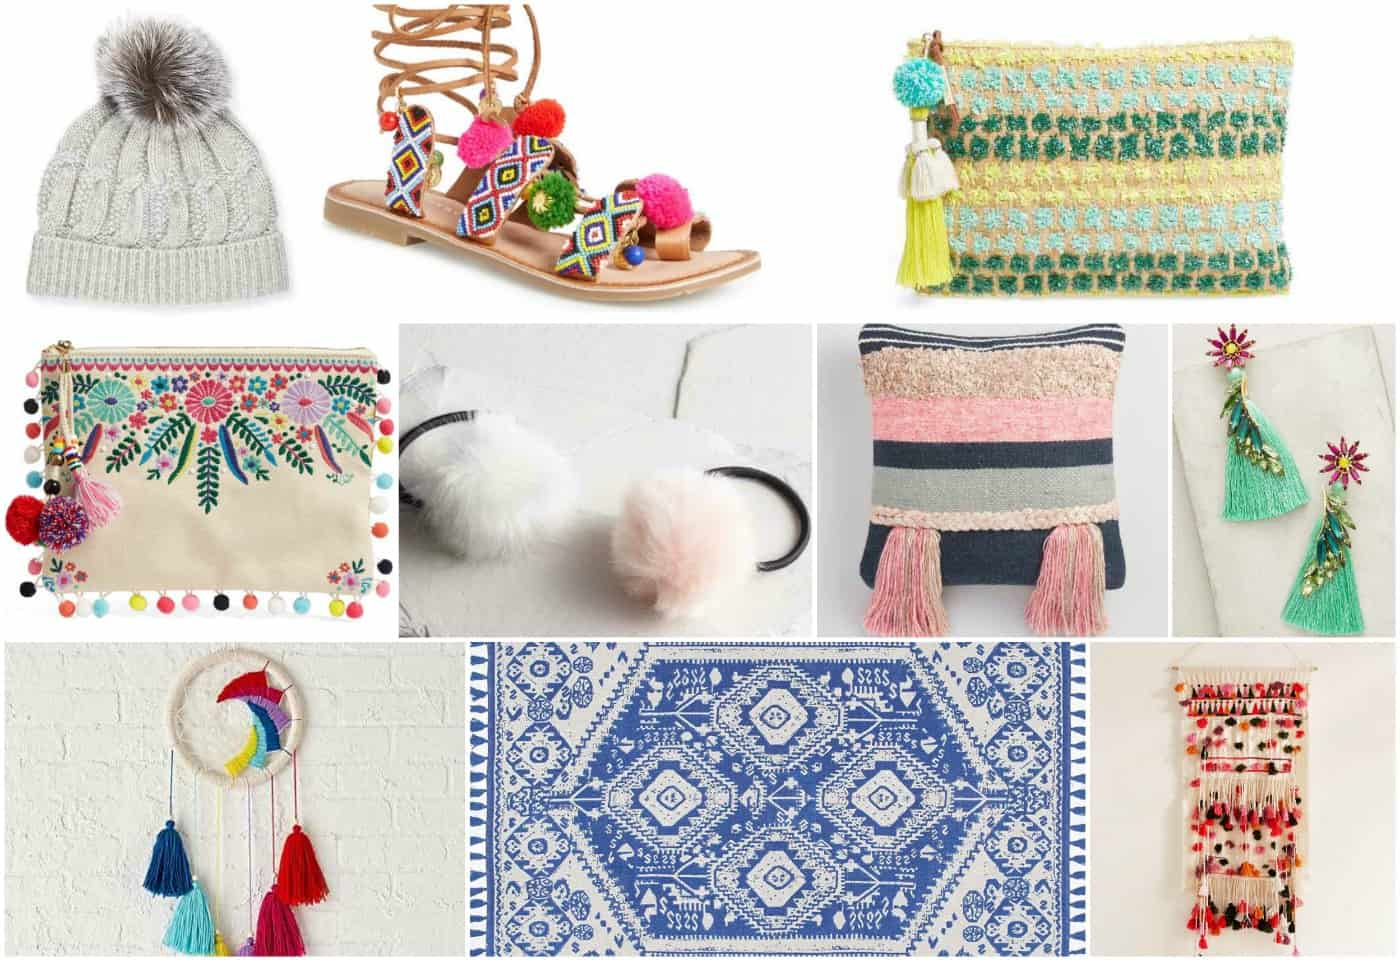 Favorite tassels in decor, fashion, accessories and design!